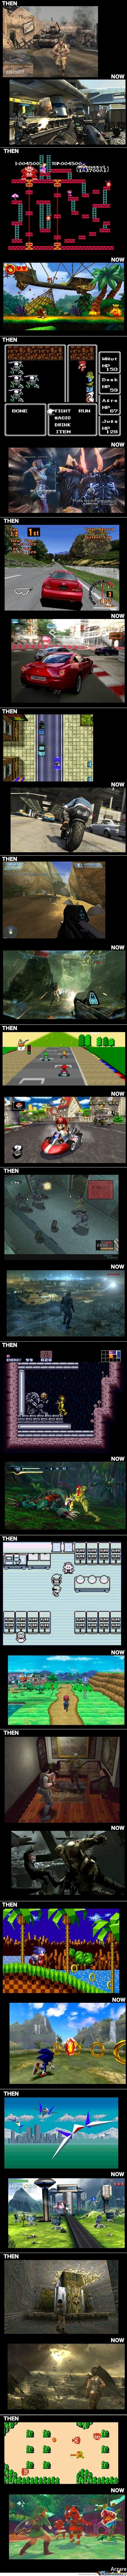 Video Games Then & Now